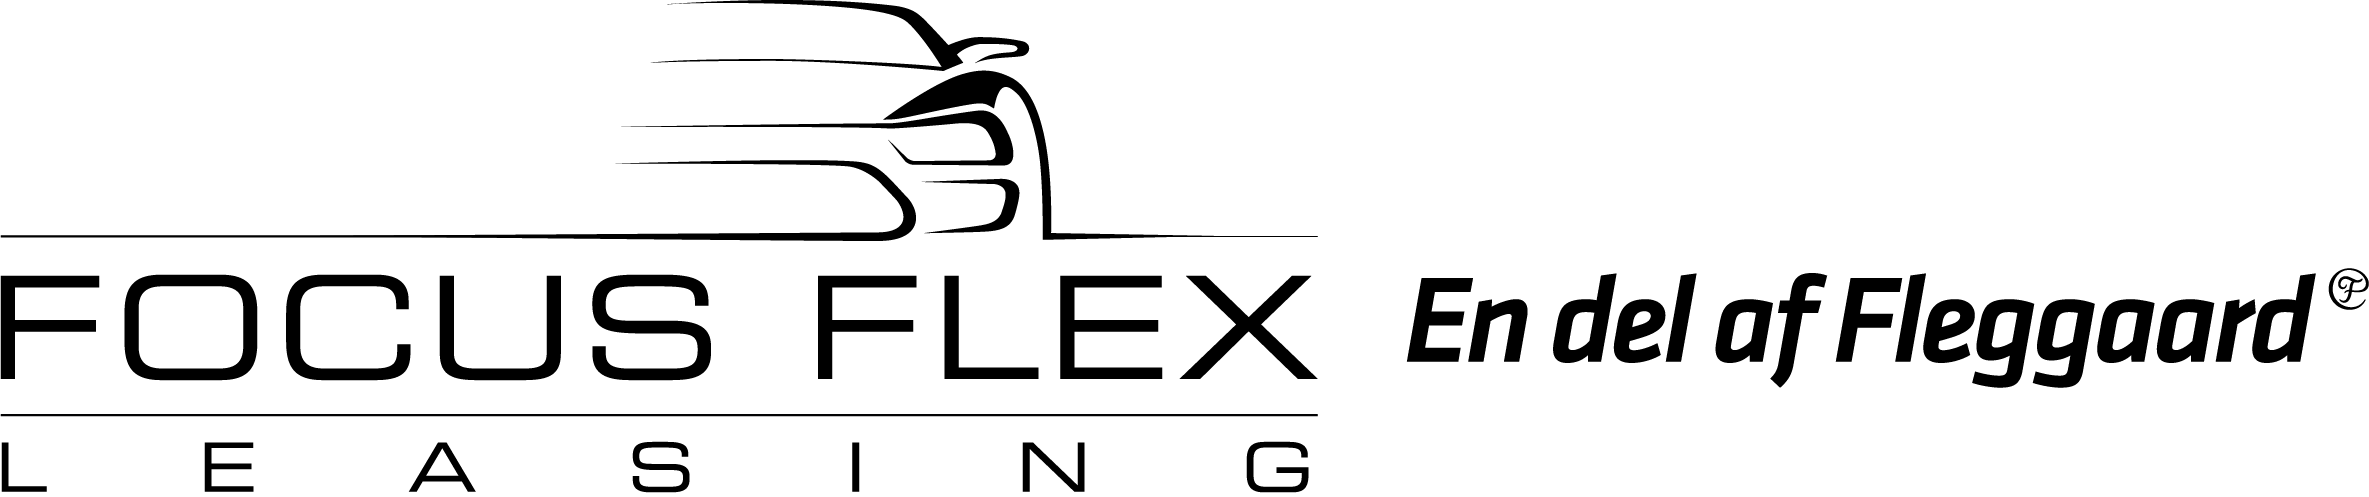 Focus flex leasing logo